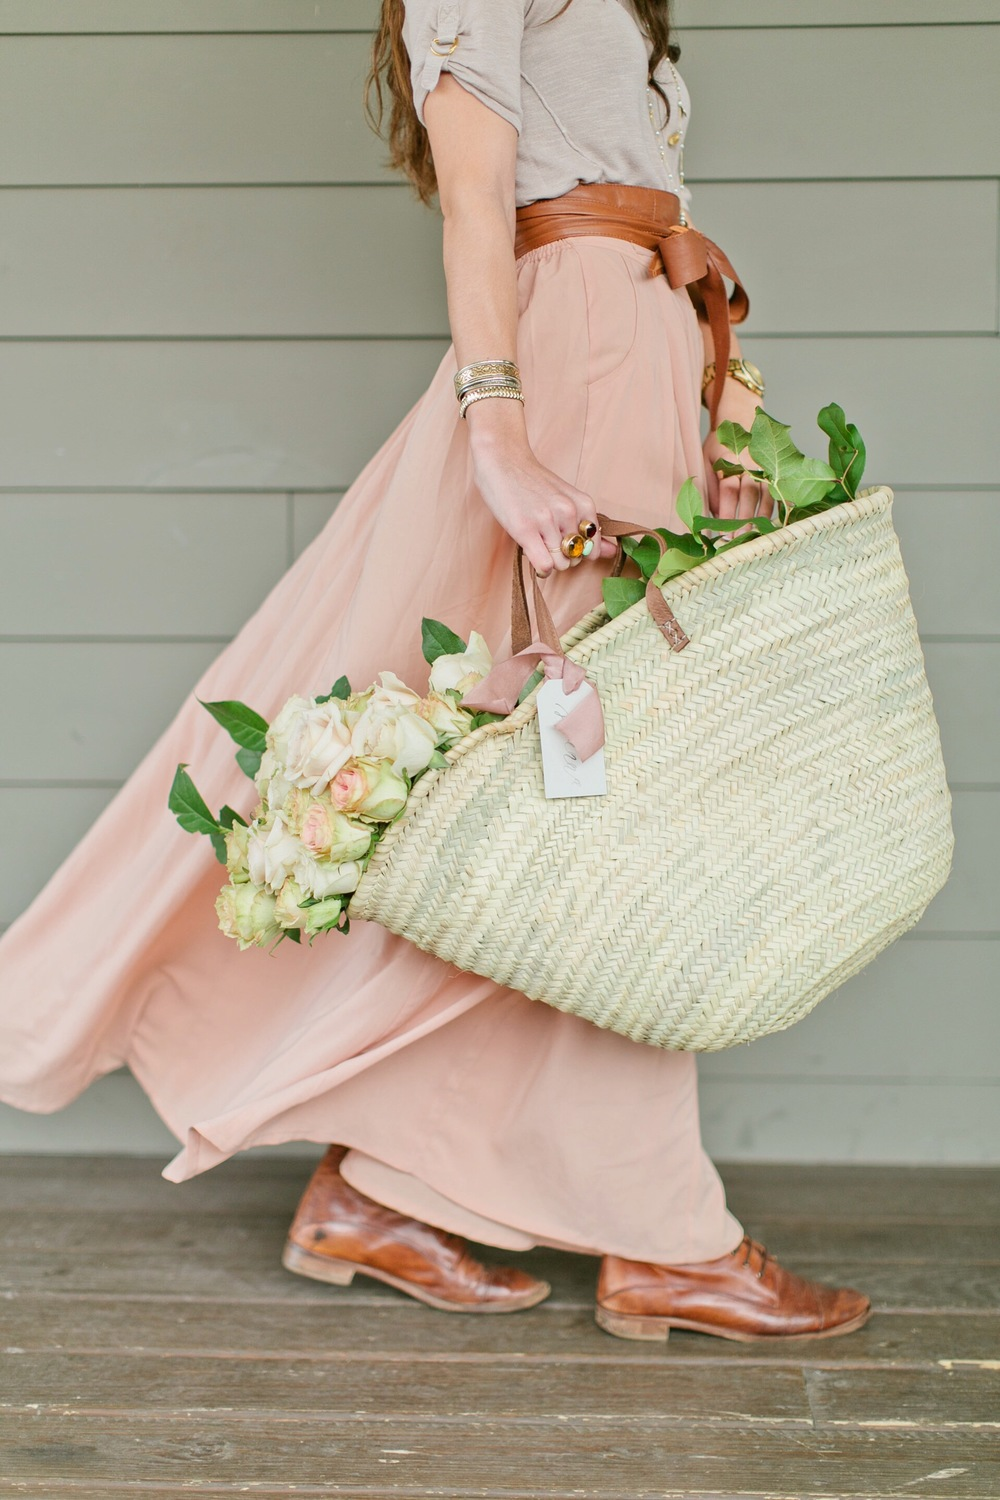 Nashville, Tennessee | Gift basket inspiration | Floral inspiration | Maxi skirt | The School of Styling - A three-day hands-on workshop for creative entrepreneurs. http://www.theschoolofstyling.com